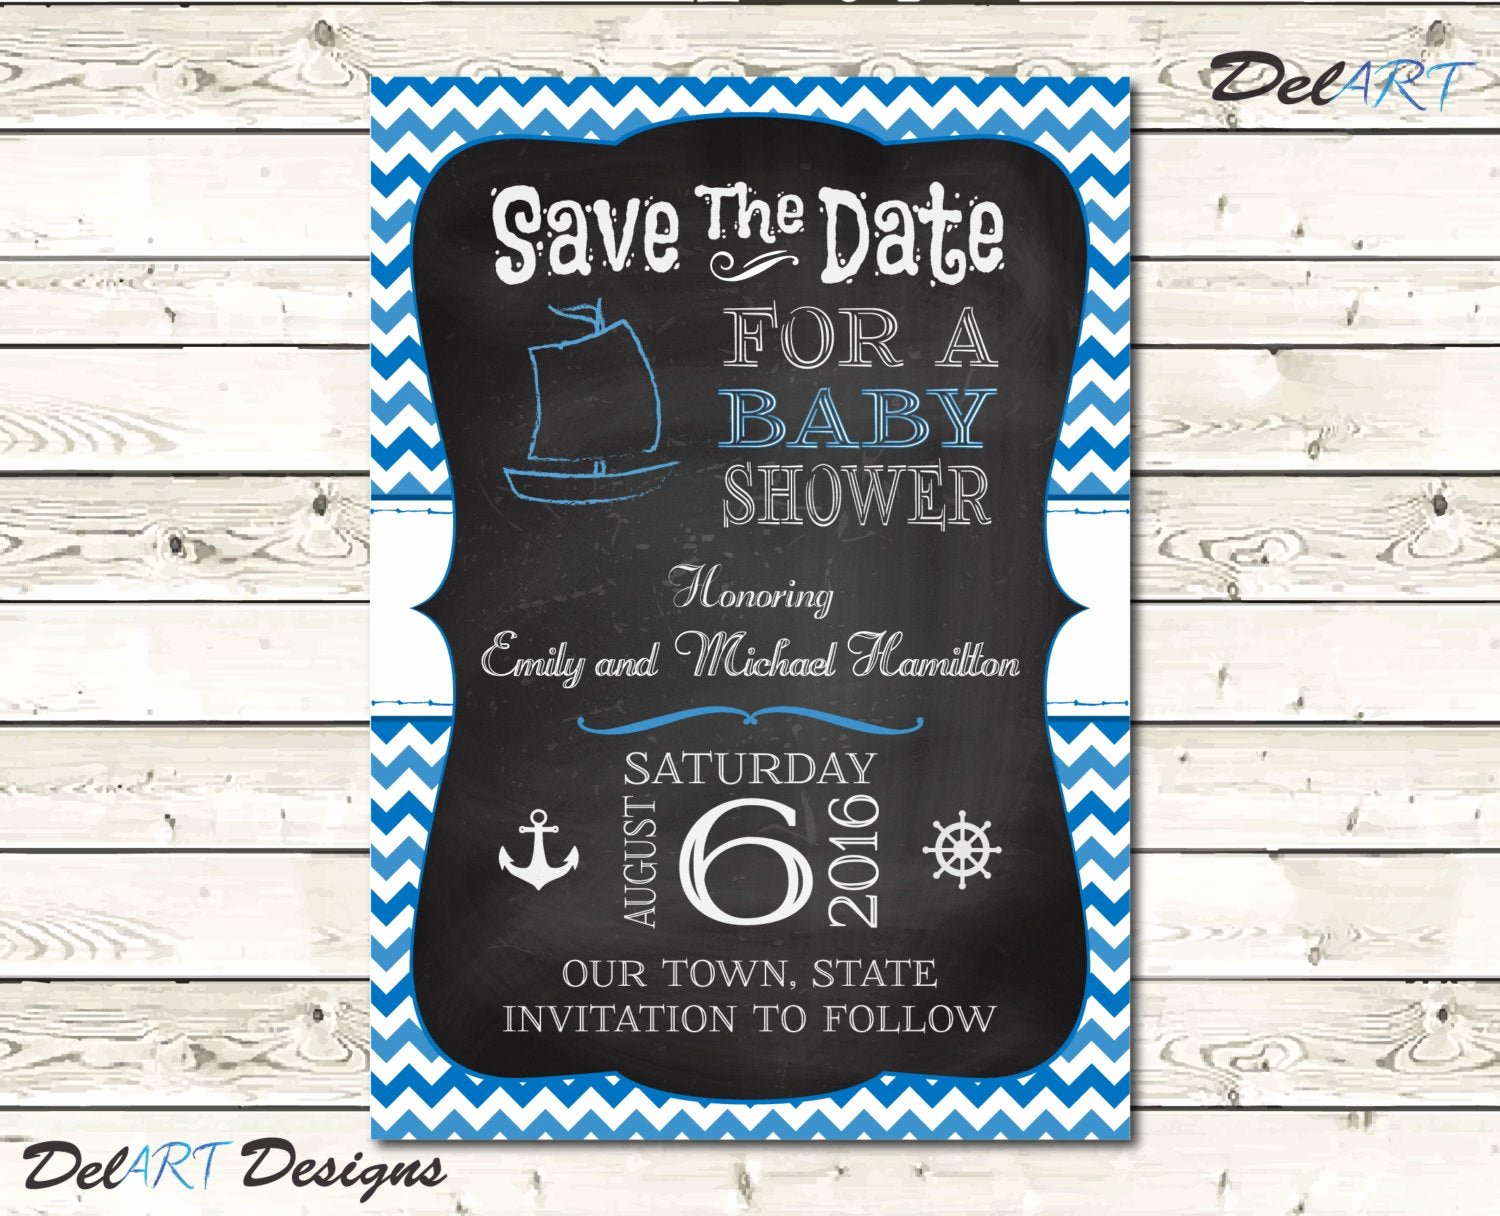 Baby Shower Save the Dates Lovely Baby Shower Save the Date Chalkboard Art Nautical by